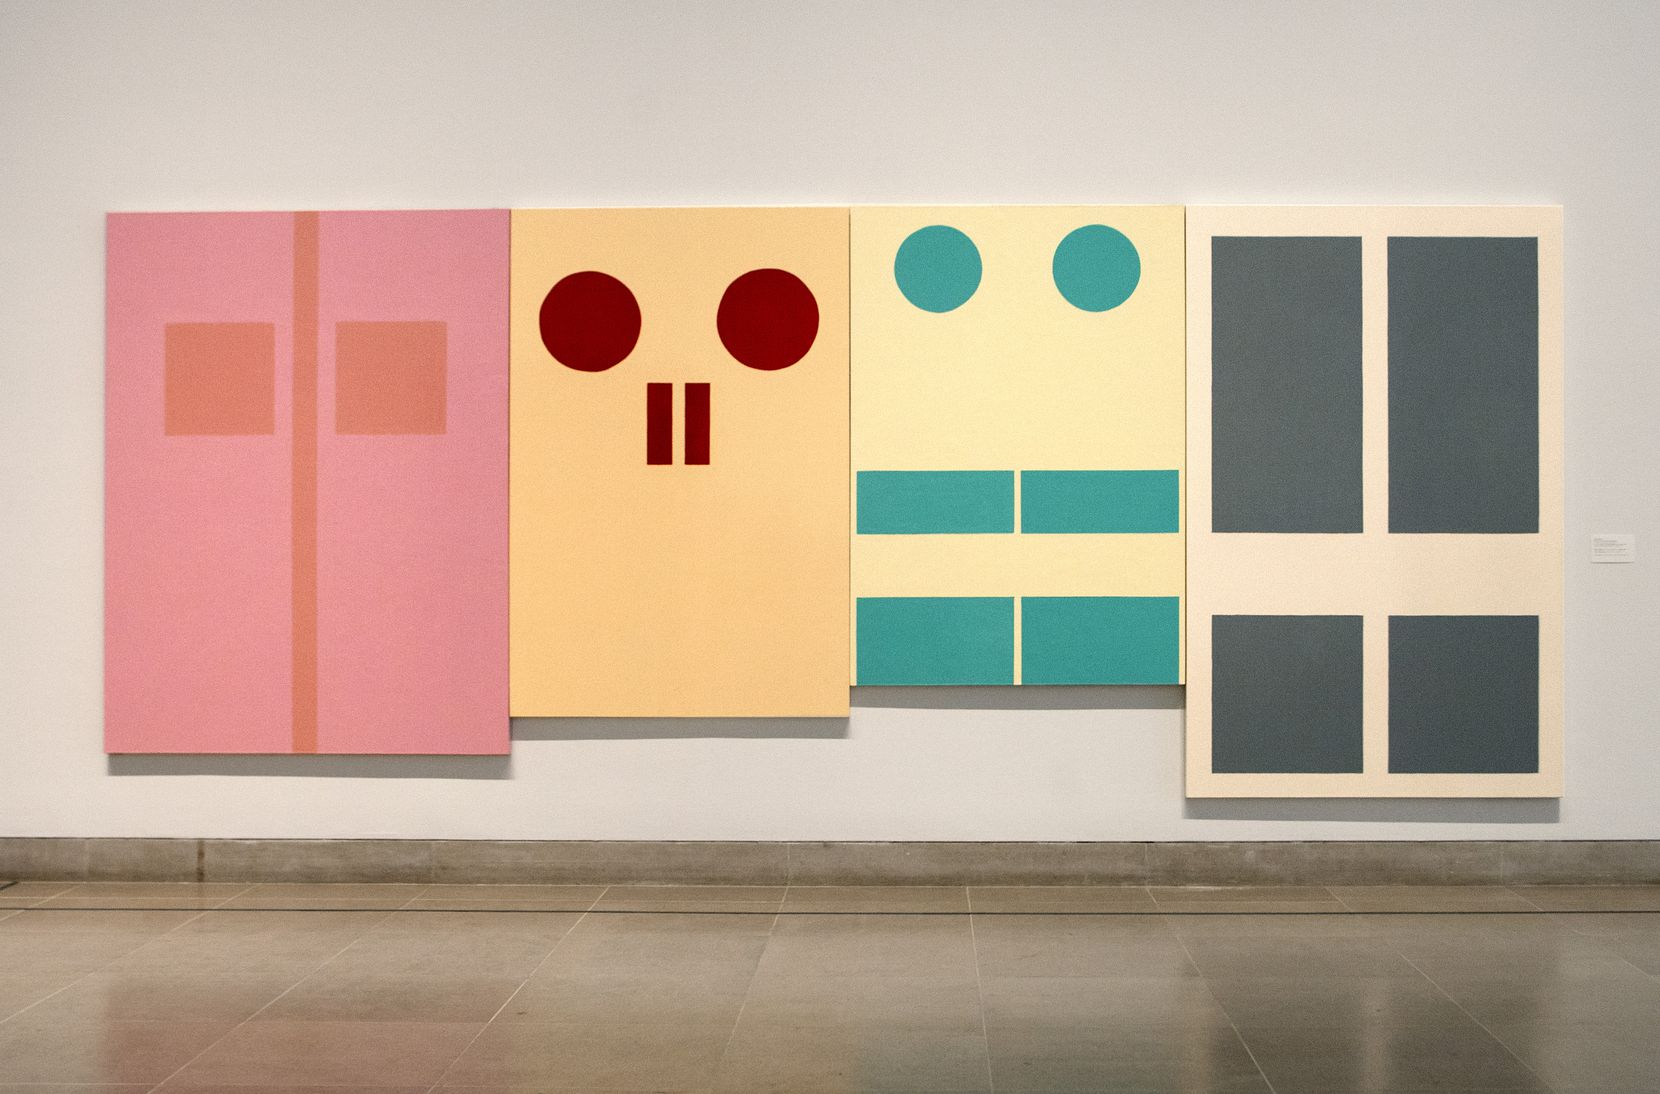 """Gary Hume's """"Four Doors I"""" is among 54 works featured in """"For a Dreamer of Houses"""" at the Dallas Museum of Art."""